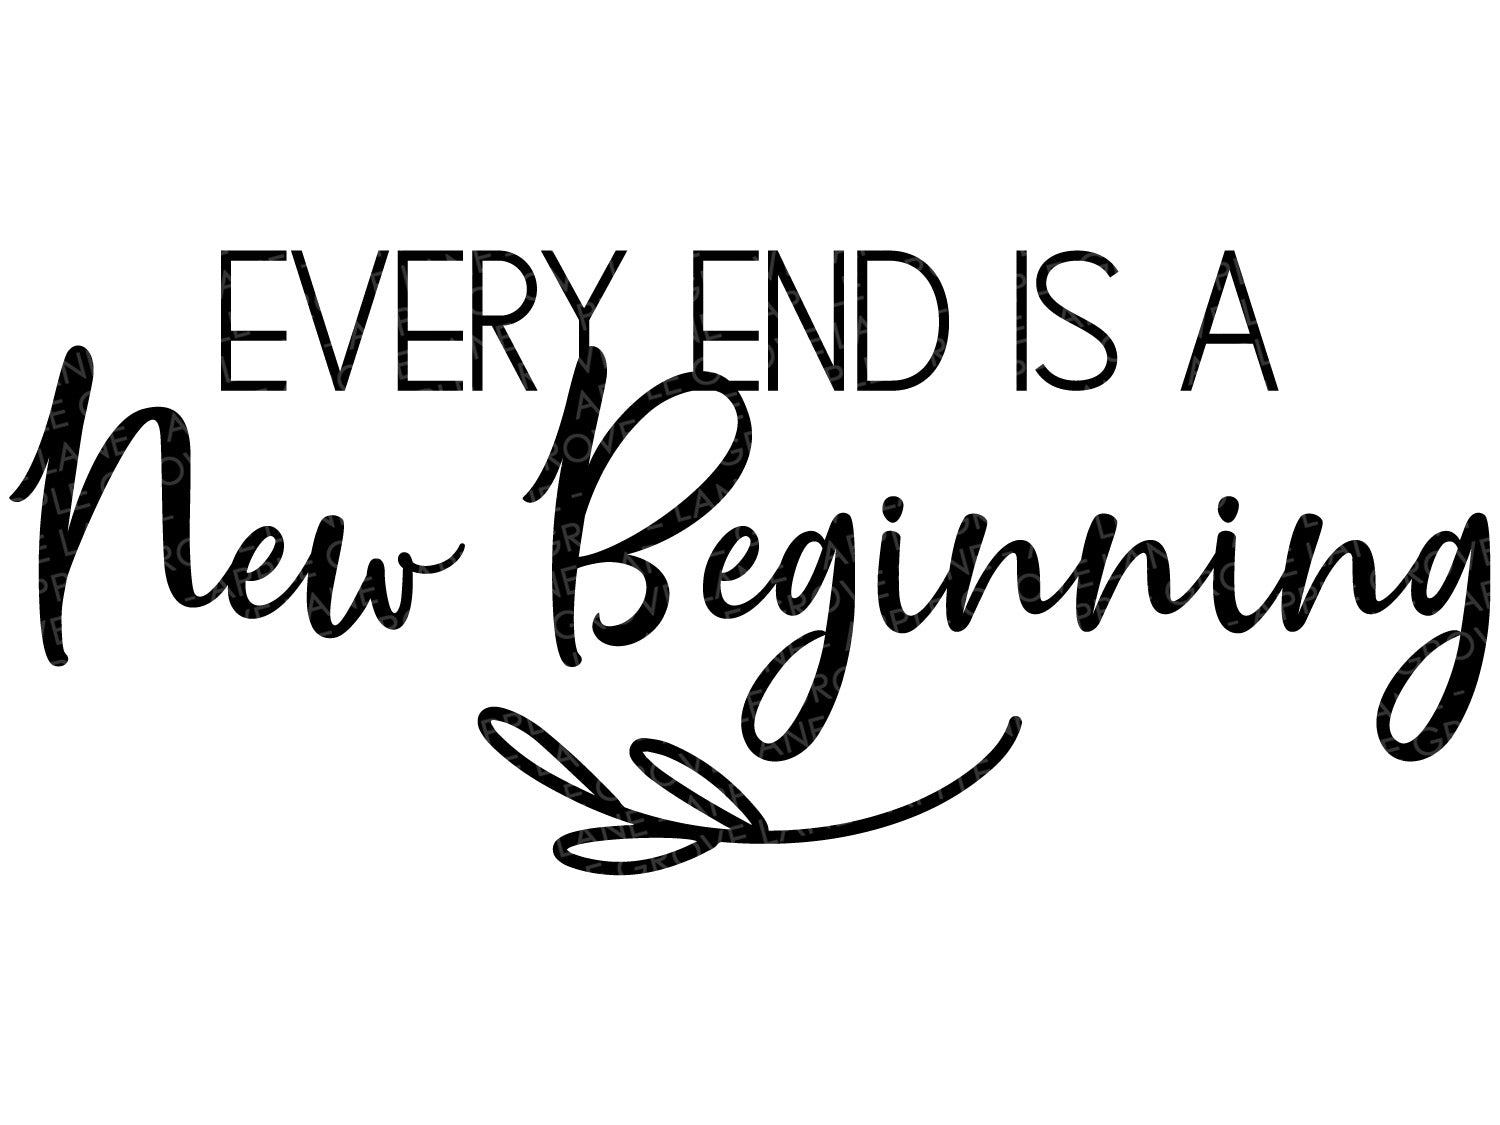 New Beginning Svg - New Year Svg - Marriage Svg - Fitness Svg - Loss Svg - Exercise Svg - New Job Svg - Change Svg - Svg Eps Dxf Png